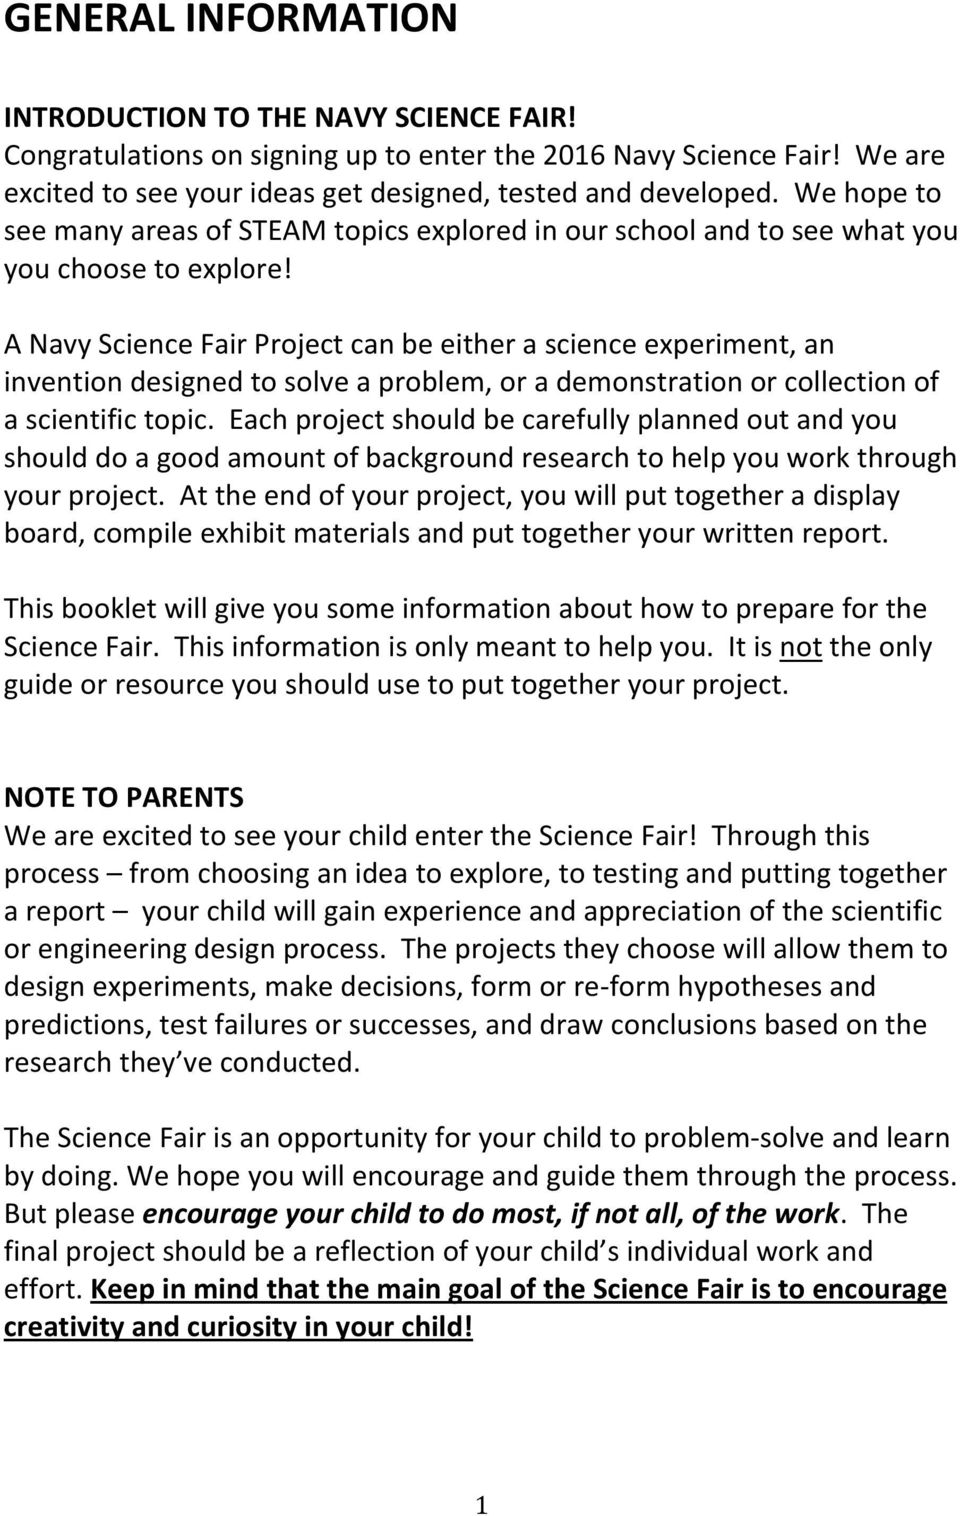 A Navy Science Fair Project can be either a science experiment, an invention designed to solve a problem, or a demonstration or collection of a scientific topic.